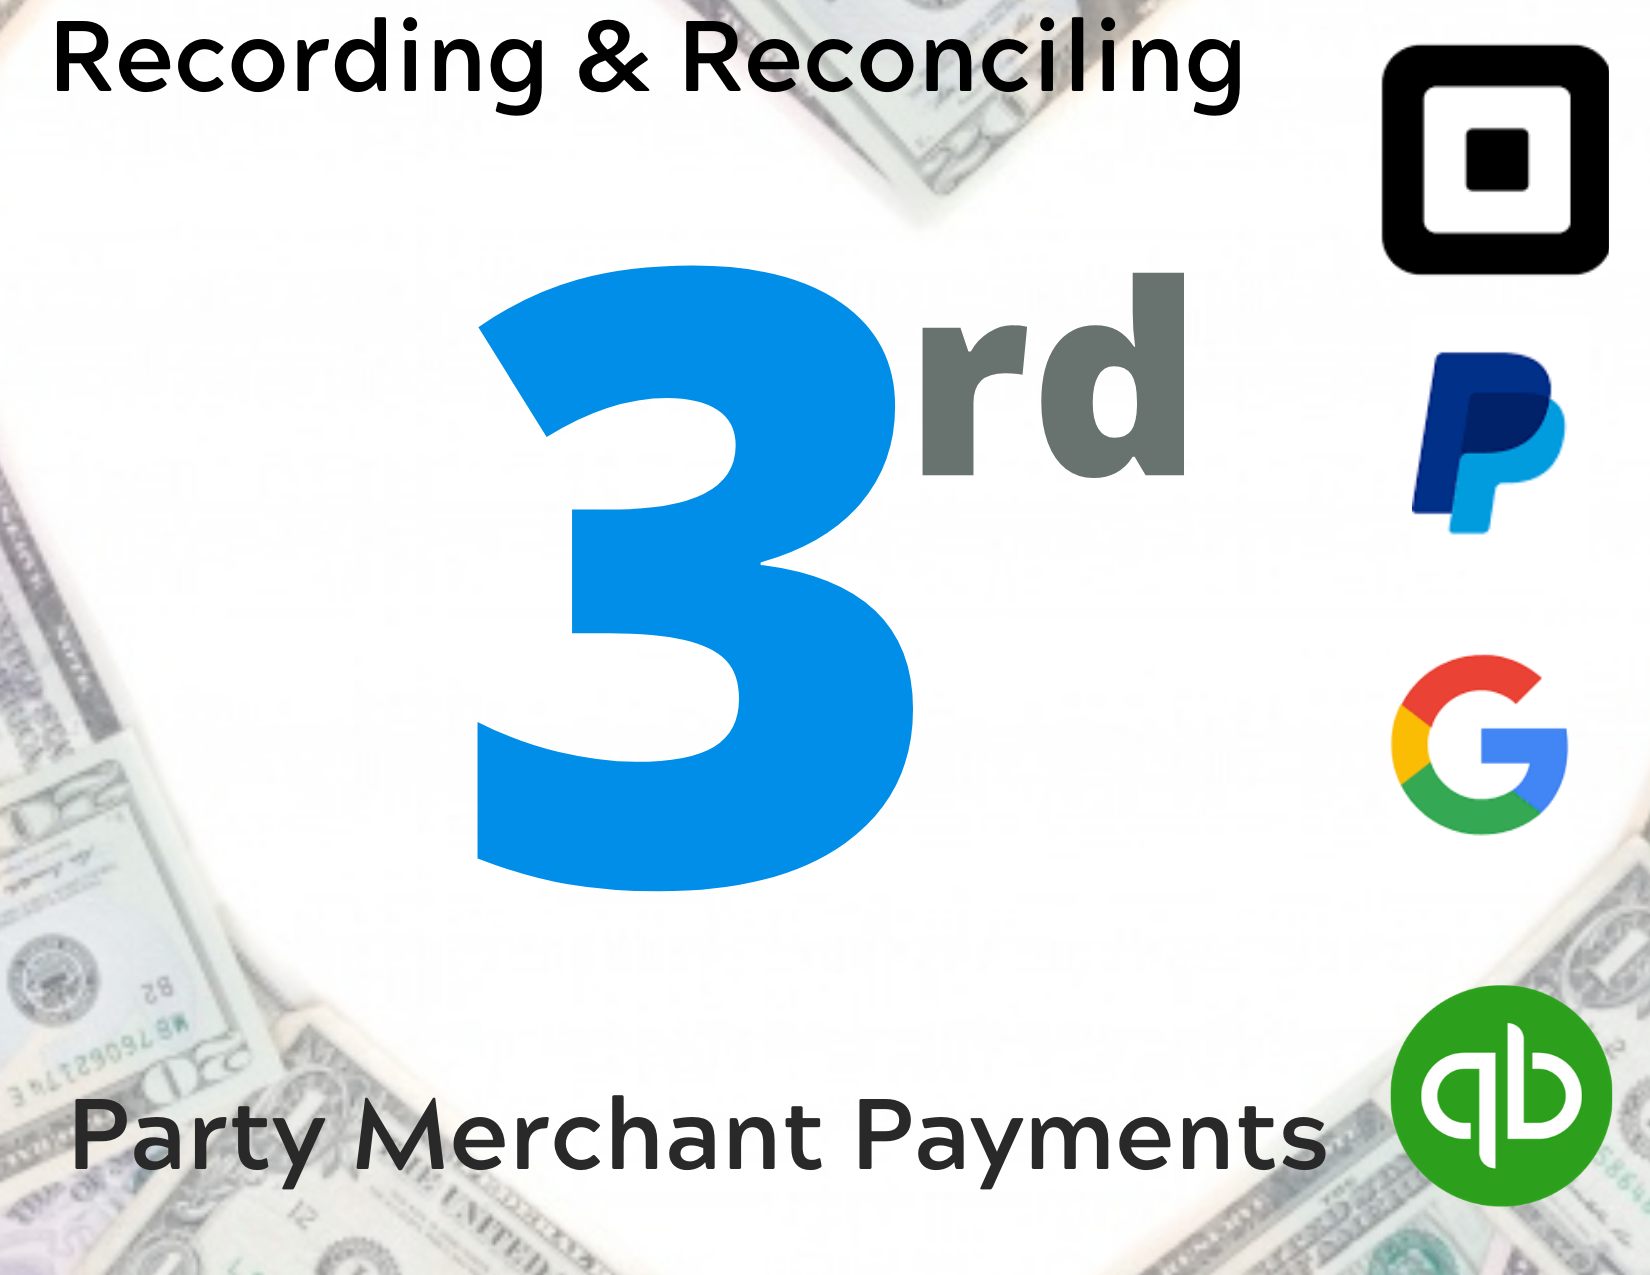 Recording & Reconciling 3rd Party Merchant Payments